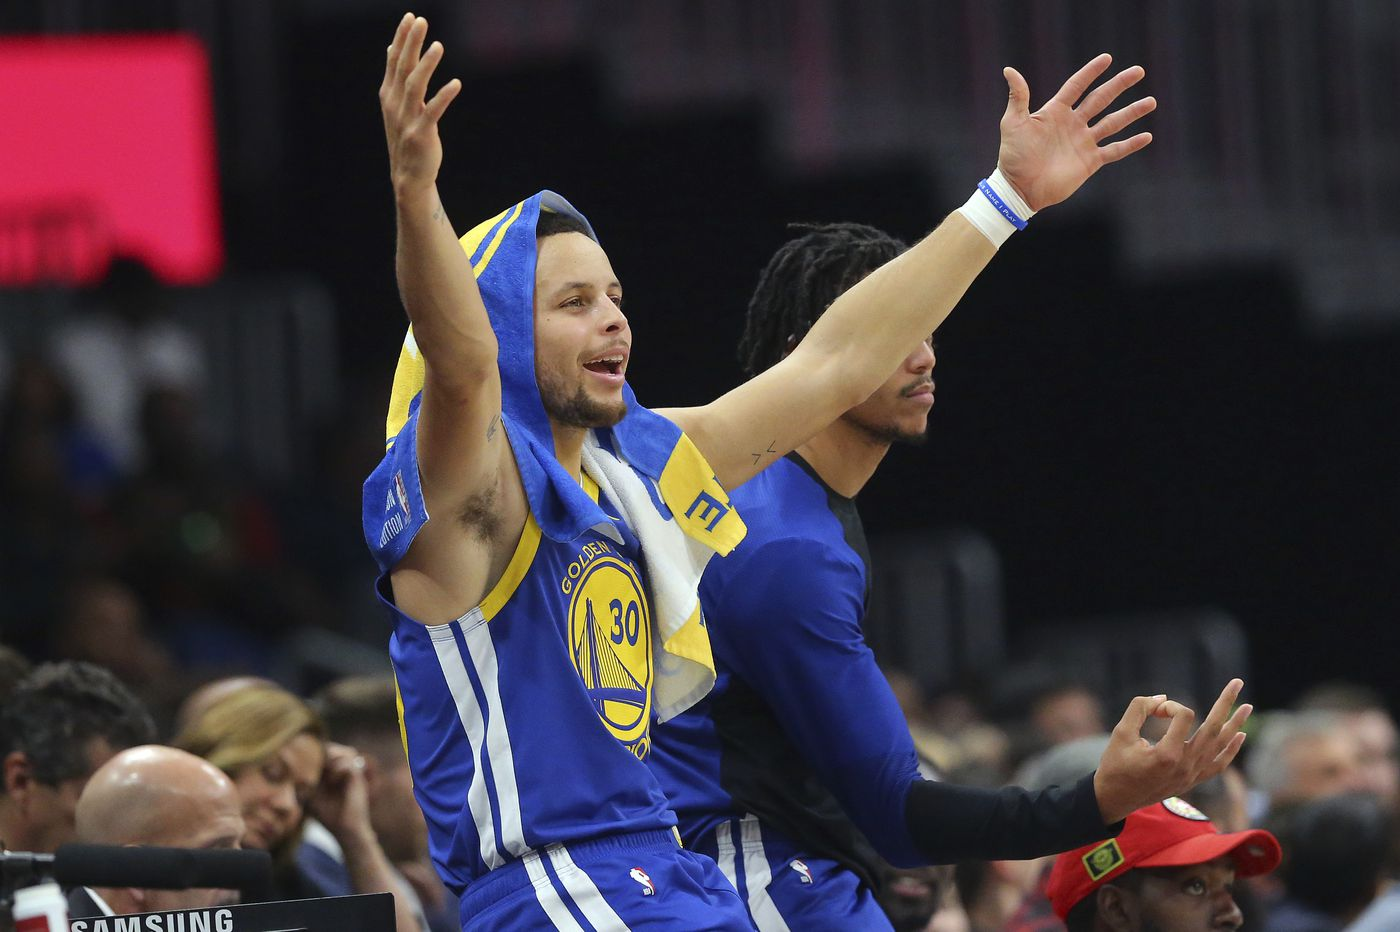 Golden State Warriors' Stephen Curry trolled Sacramento Kings moon landing comments